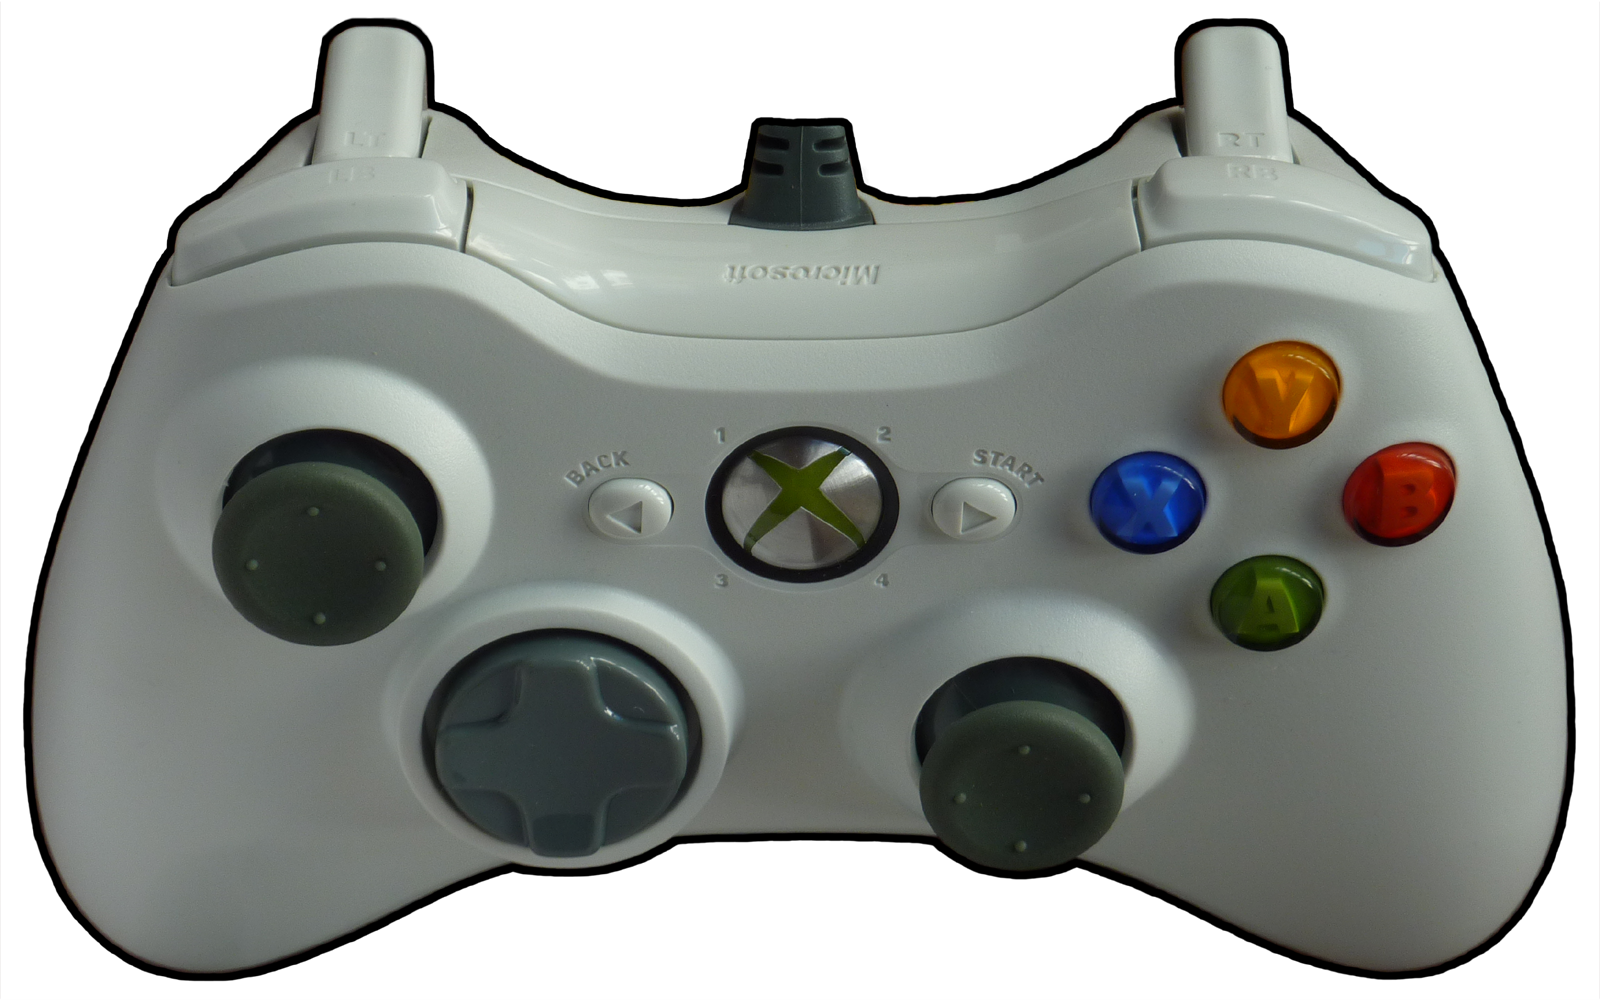 1600x1000 Have An Alpha Masked Xbox 360 Controller, On Me. Spyparty A